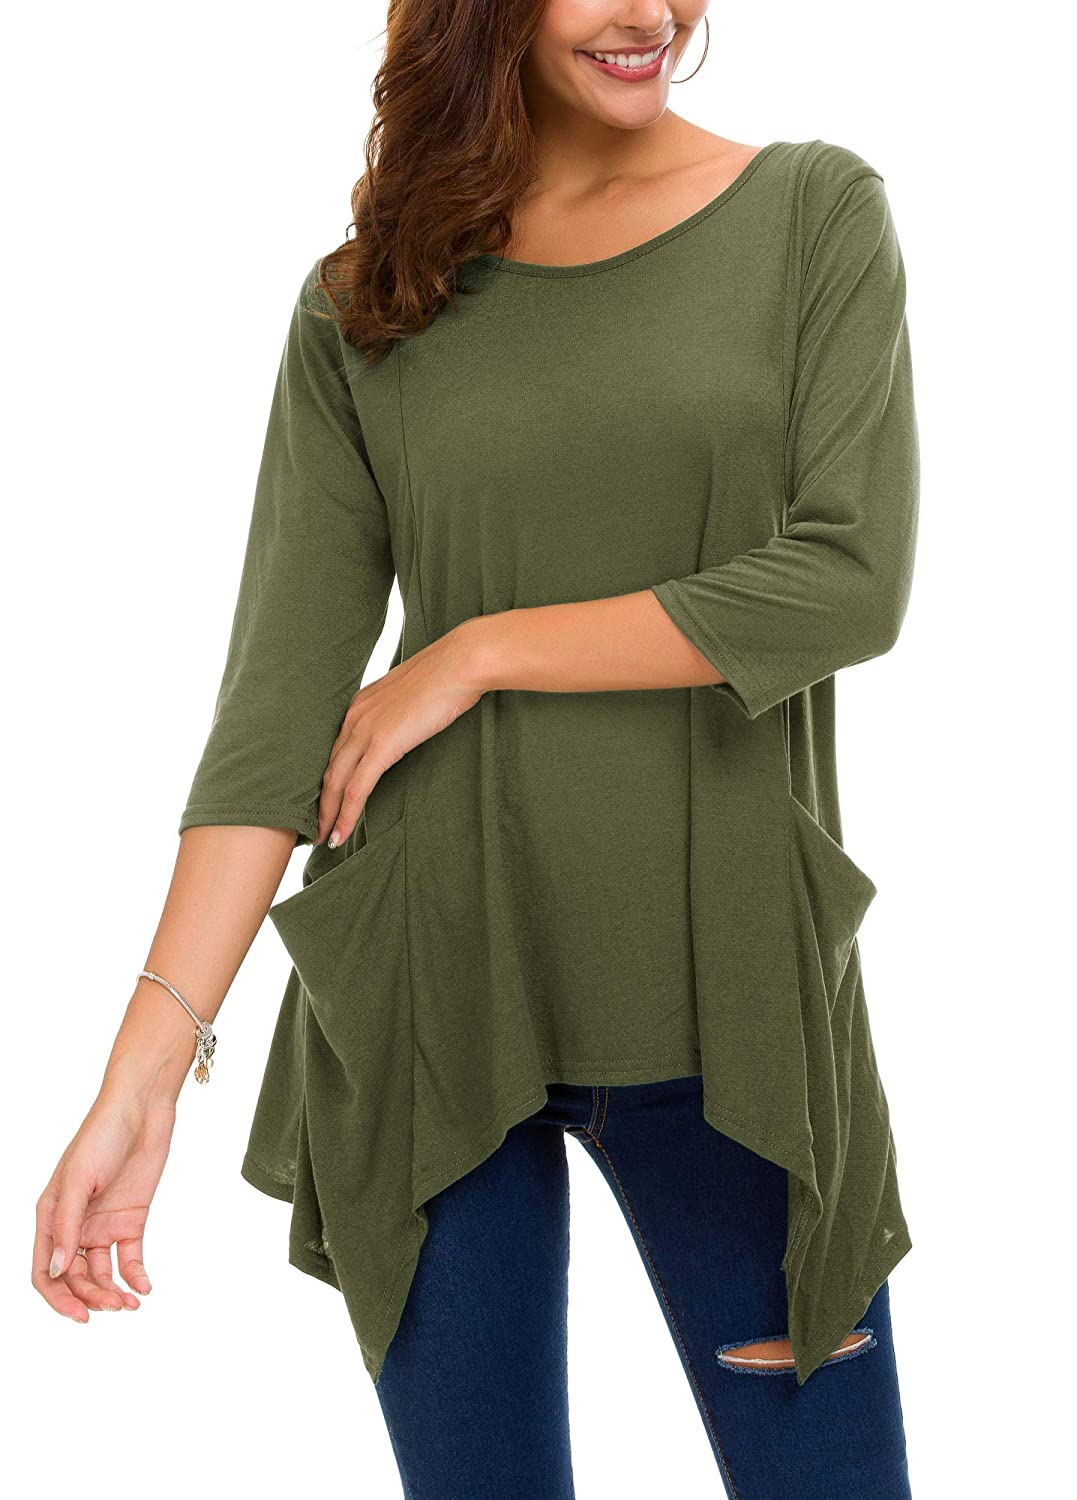 2f4d3412636 Urban CoCo Women s Plus Size 3 4 Sleeve Tunic Tops for Leggings Loose  Pocket Shirt at Amazon Women s Clothing store